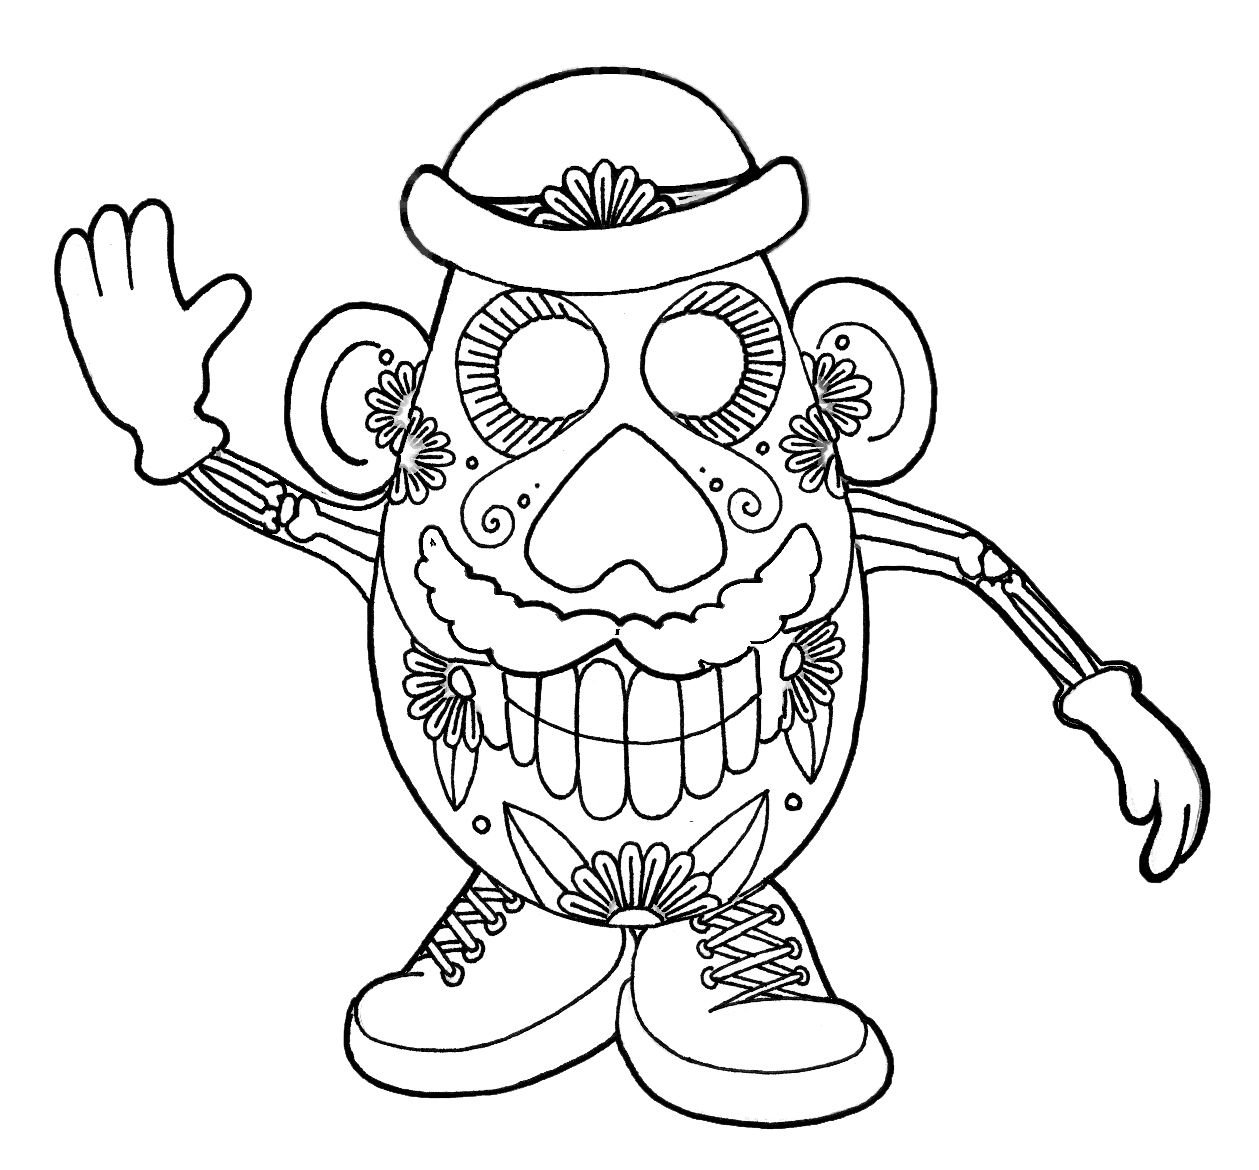 day of the dead coloring sheets yucca flats nm wenchkin39s coloring pages dia de los day of coloring dead sheets the